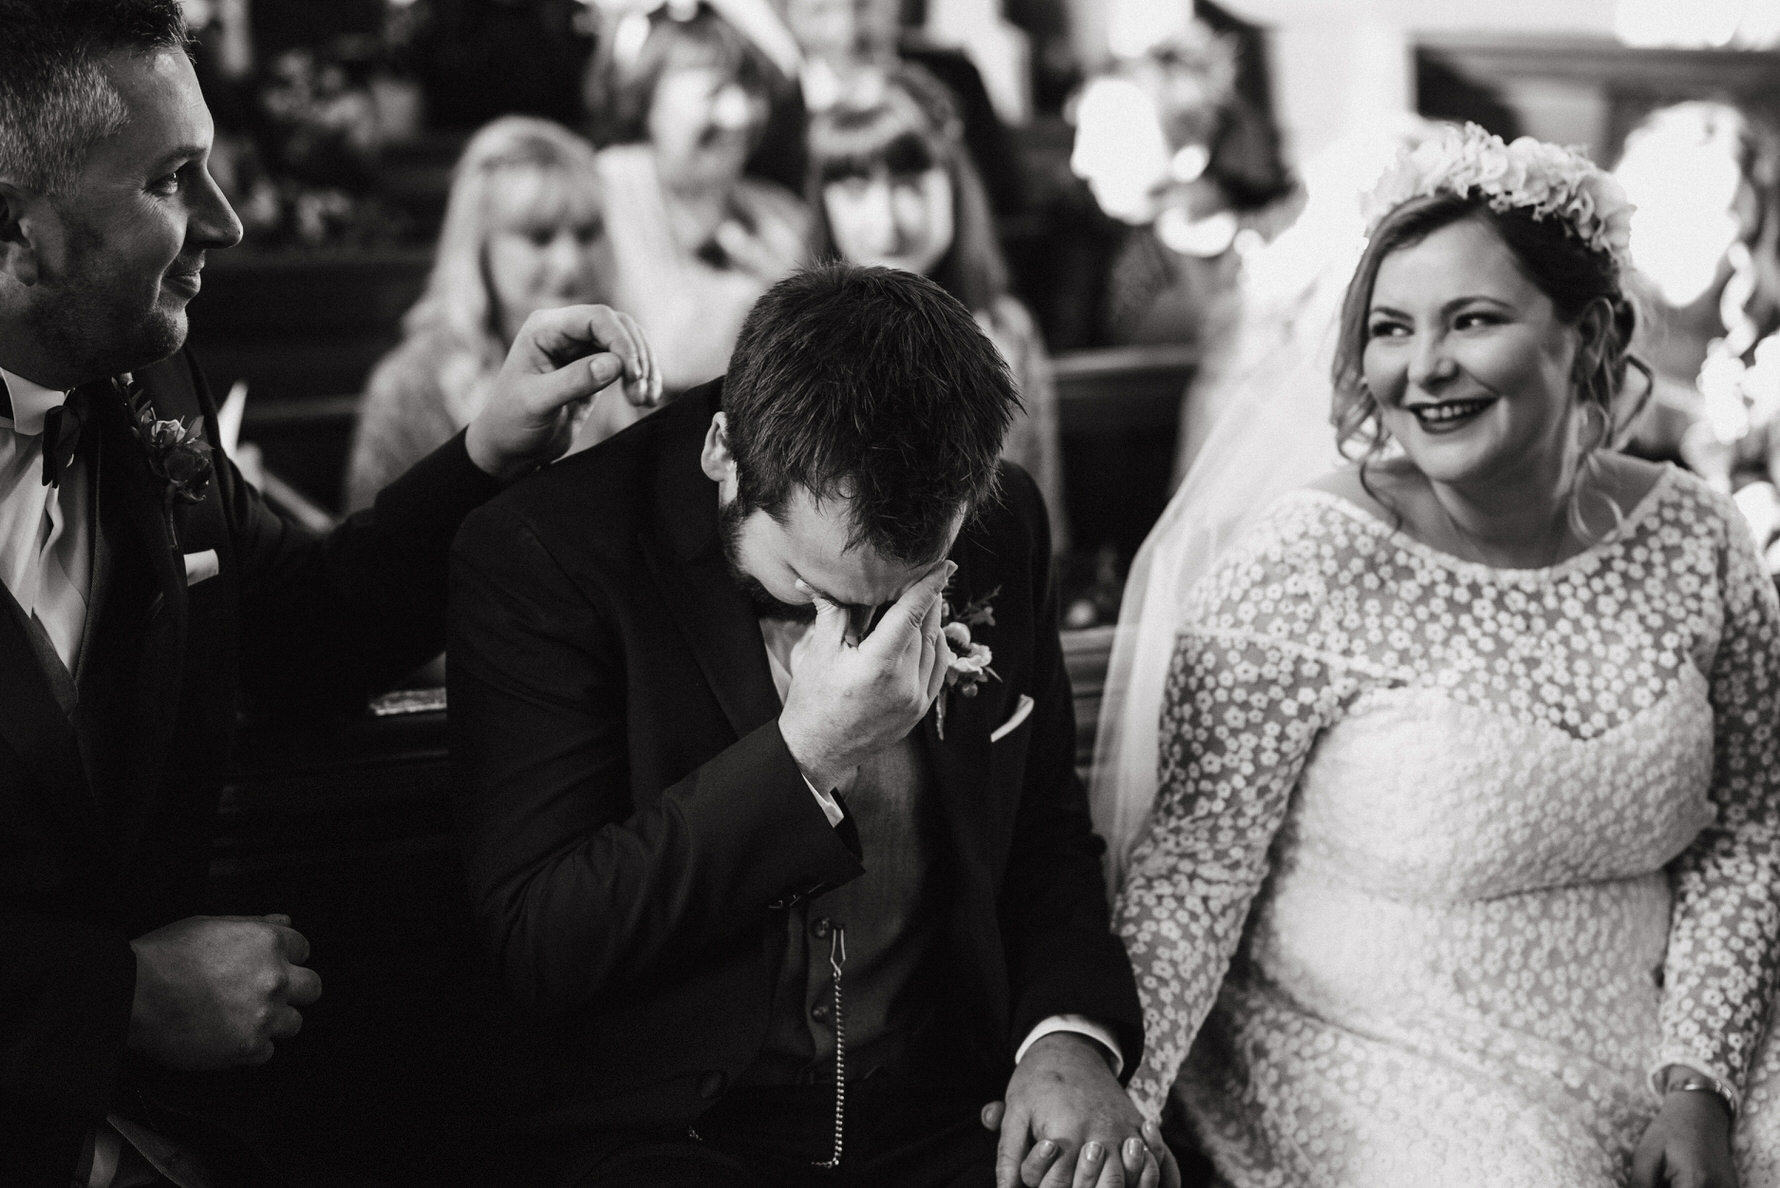 Wedding Photojournalism - A groom in tears at the wedding ceremony